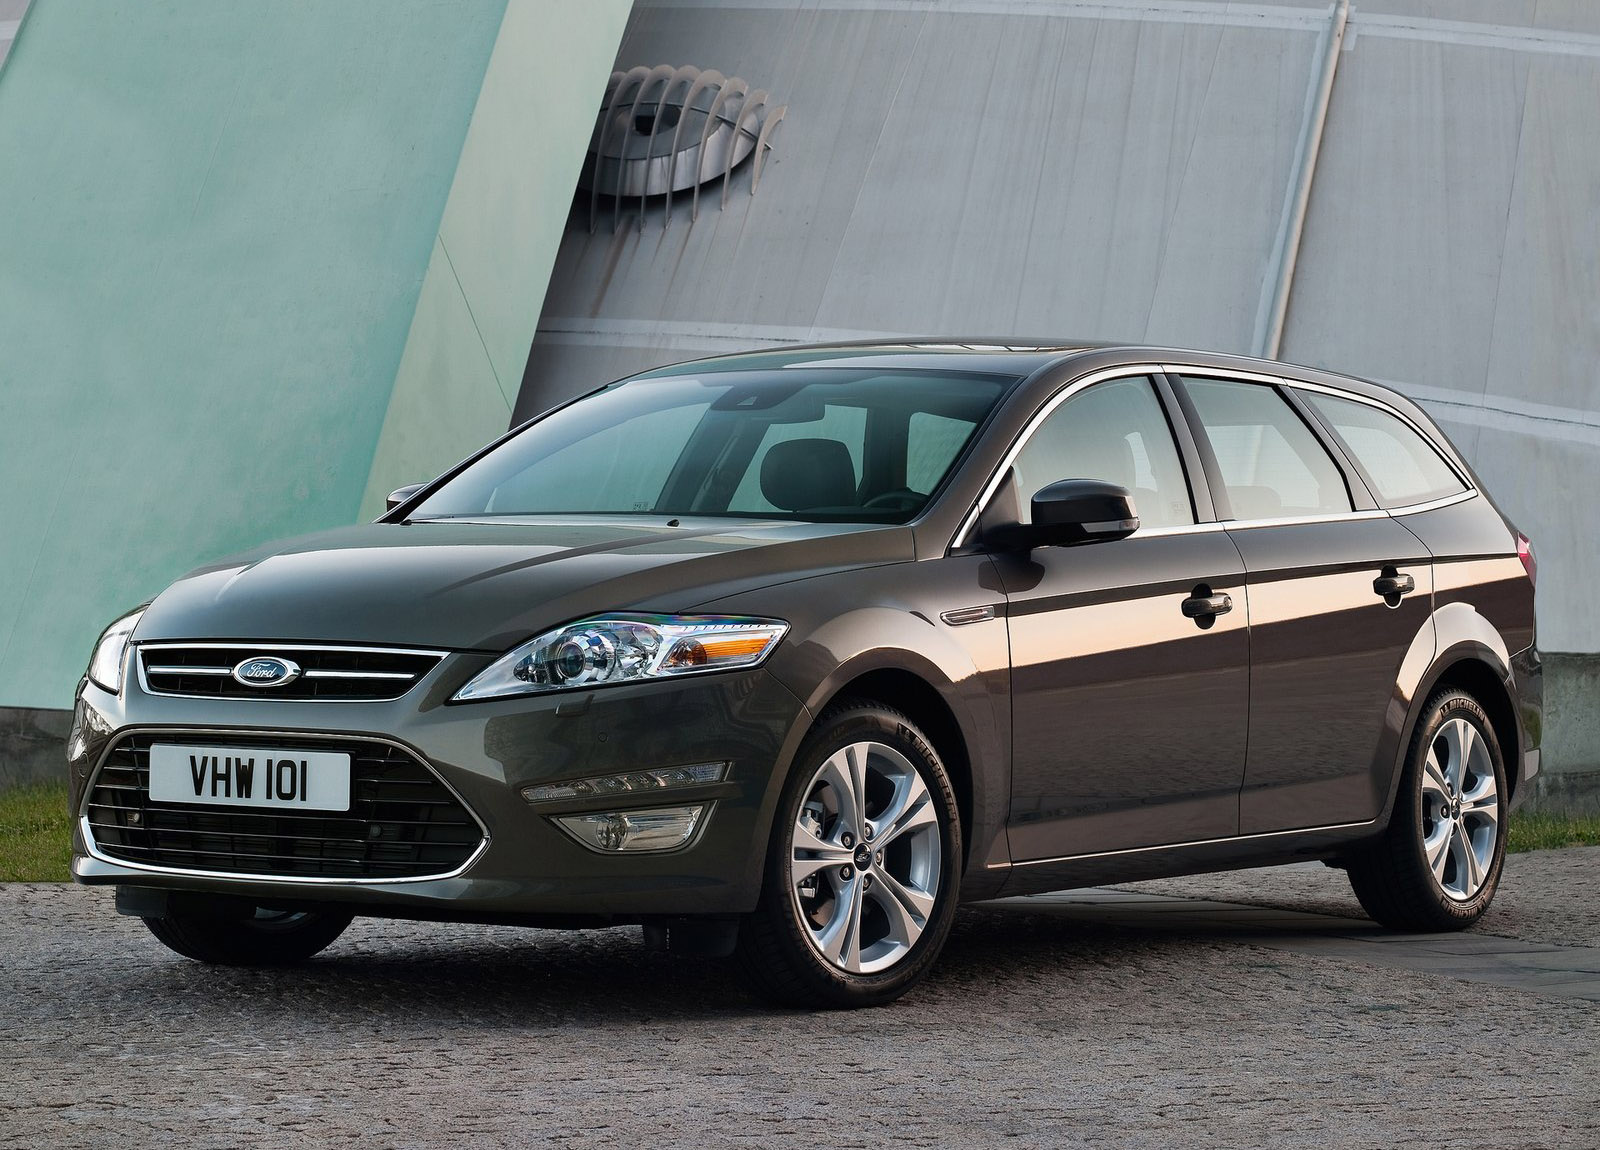 Ford Mondeo Wagon photo #1